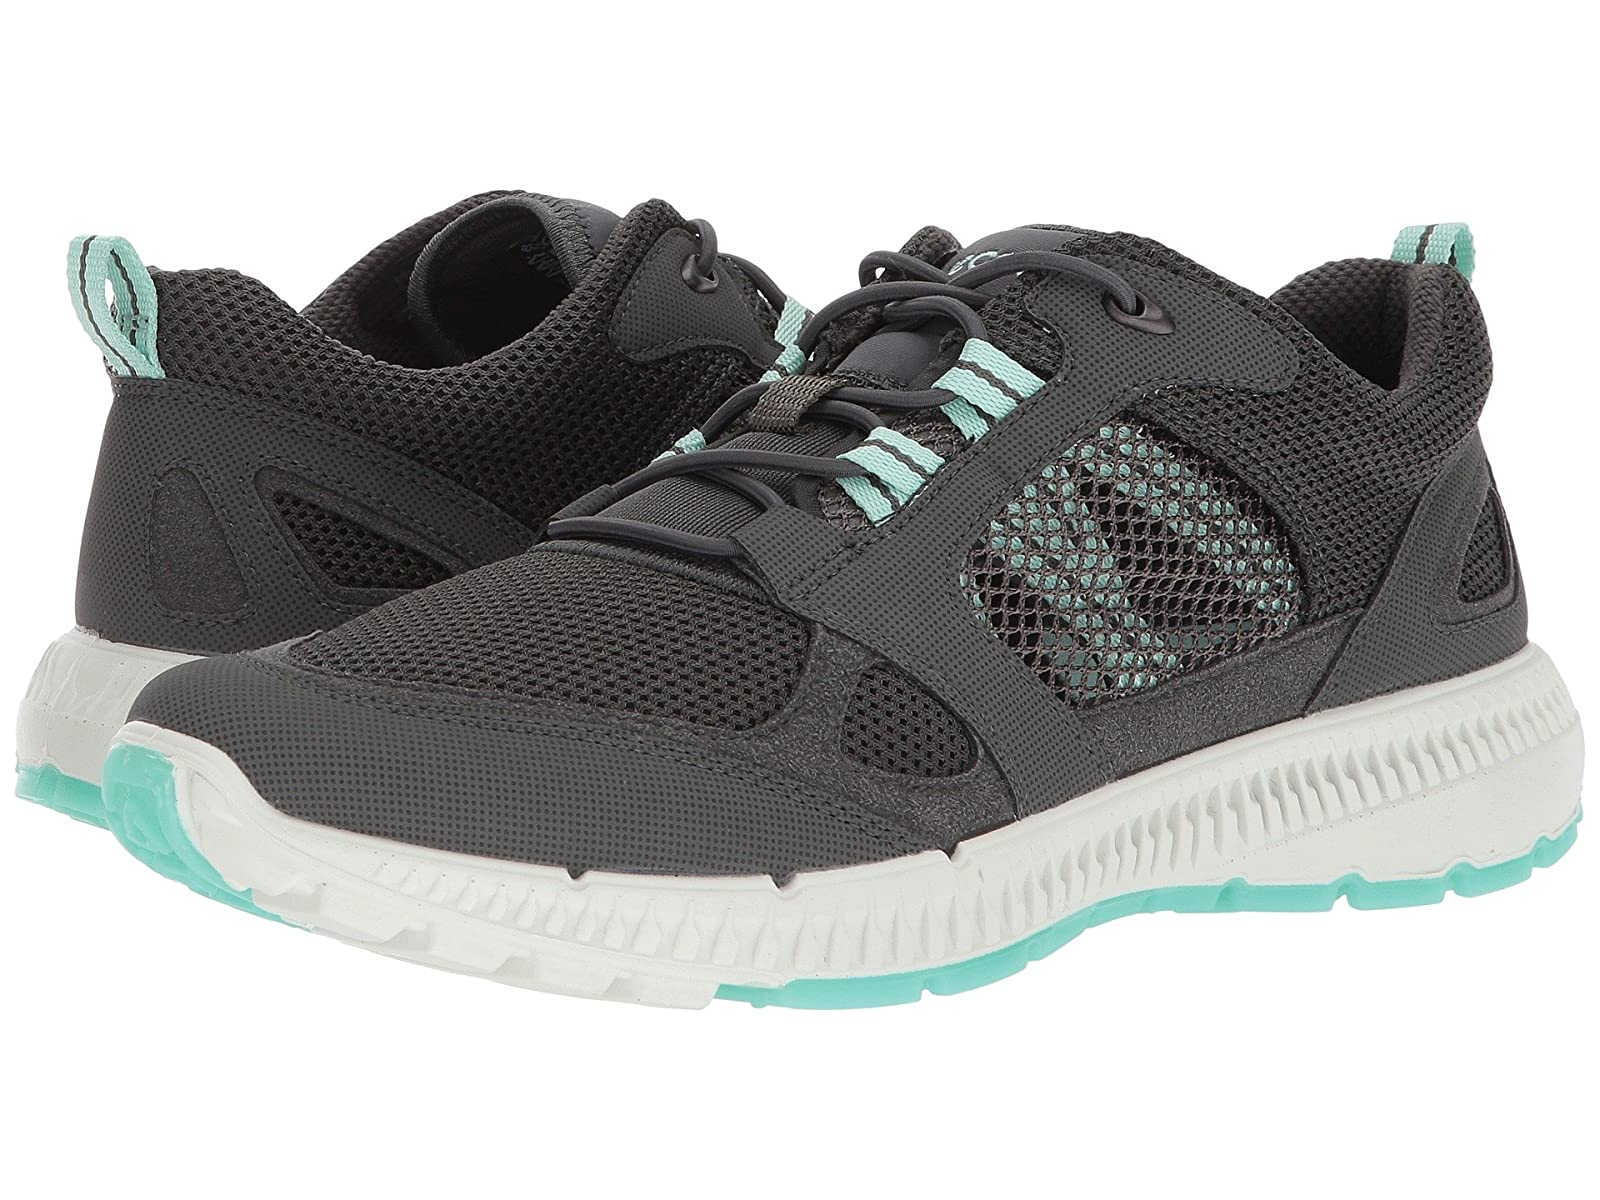 ECCO Sport Terracruise IIAtmospheric grades have affordable shoes